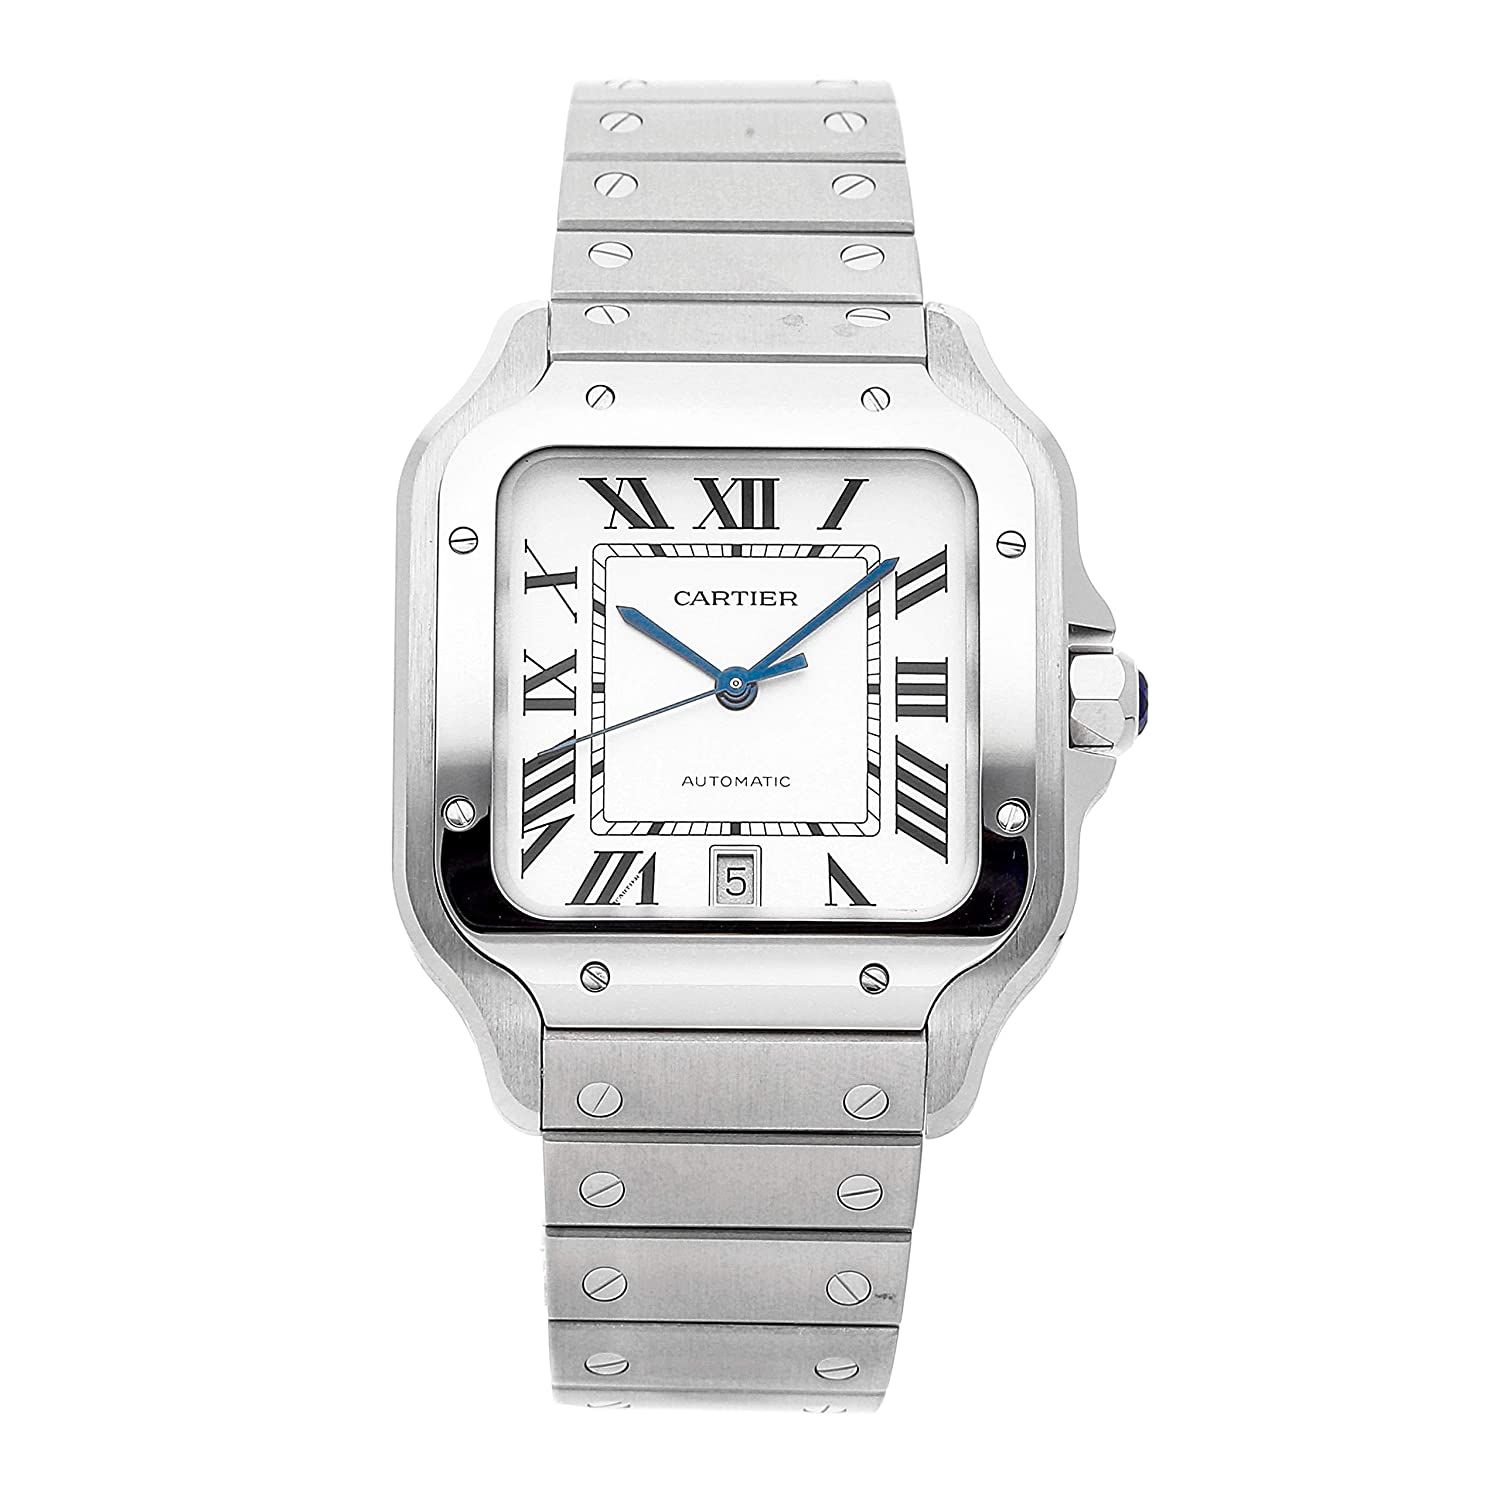 Functional Watch, Automatic Watch, Steel Watch, Silver Watch, Square Watch